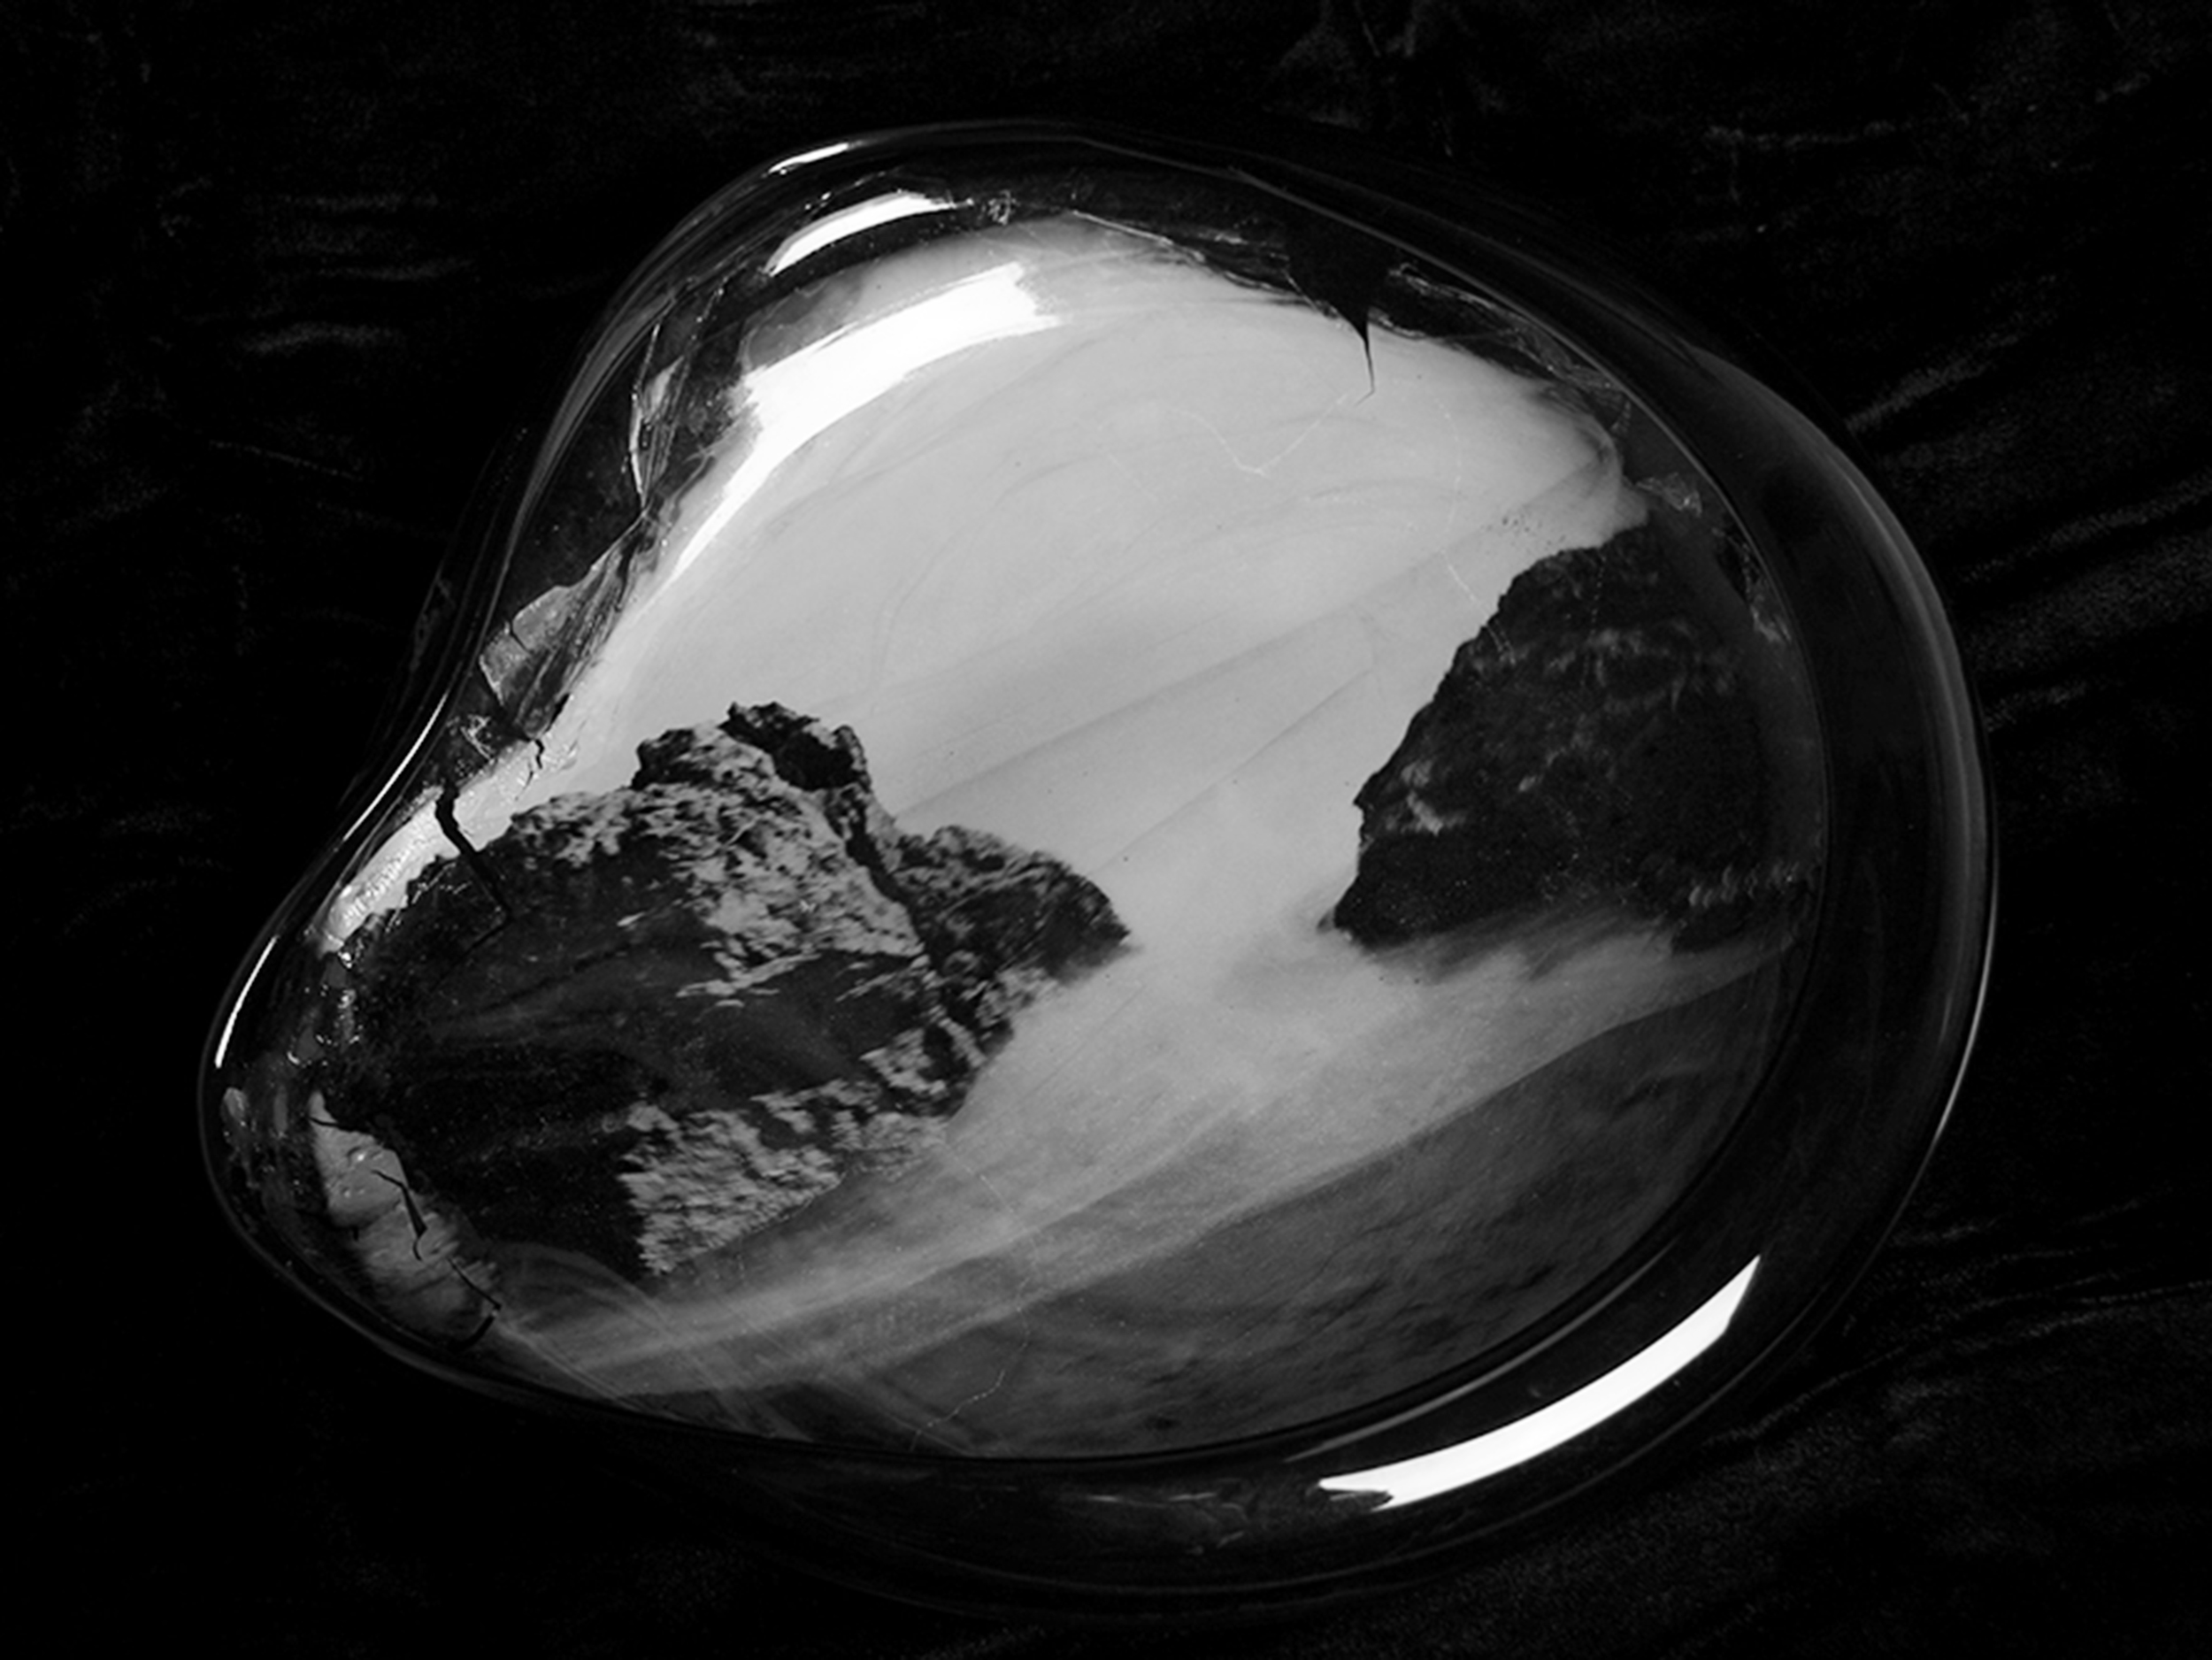 NEGATIVE AMBROTYPE - TRANSPARENT SEA GREEN HANDBLOWN GLASS